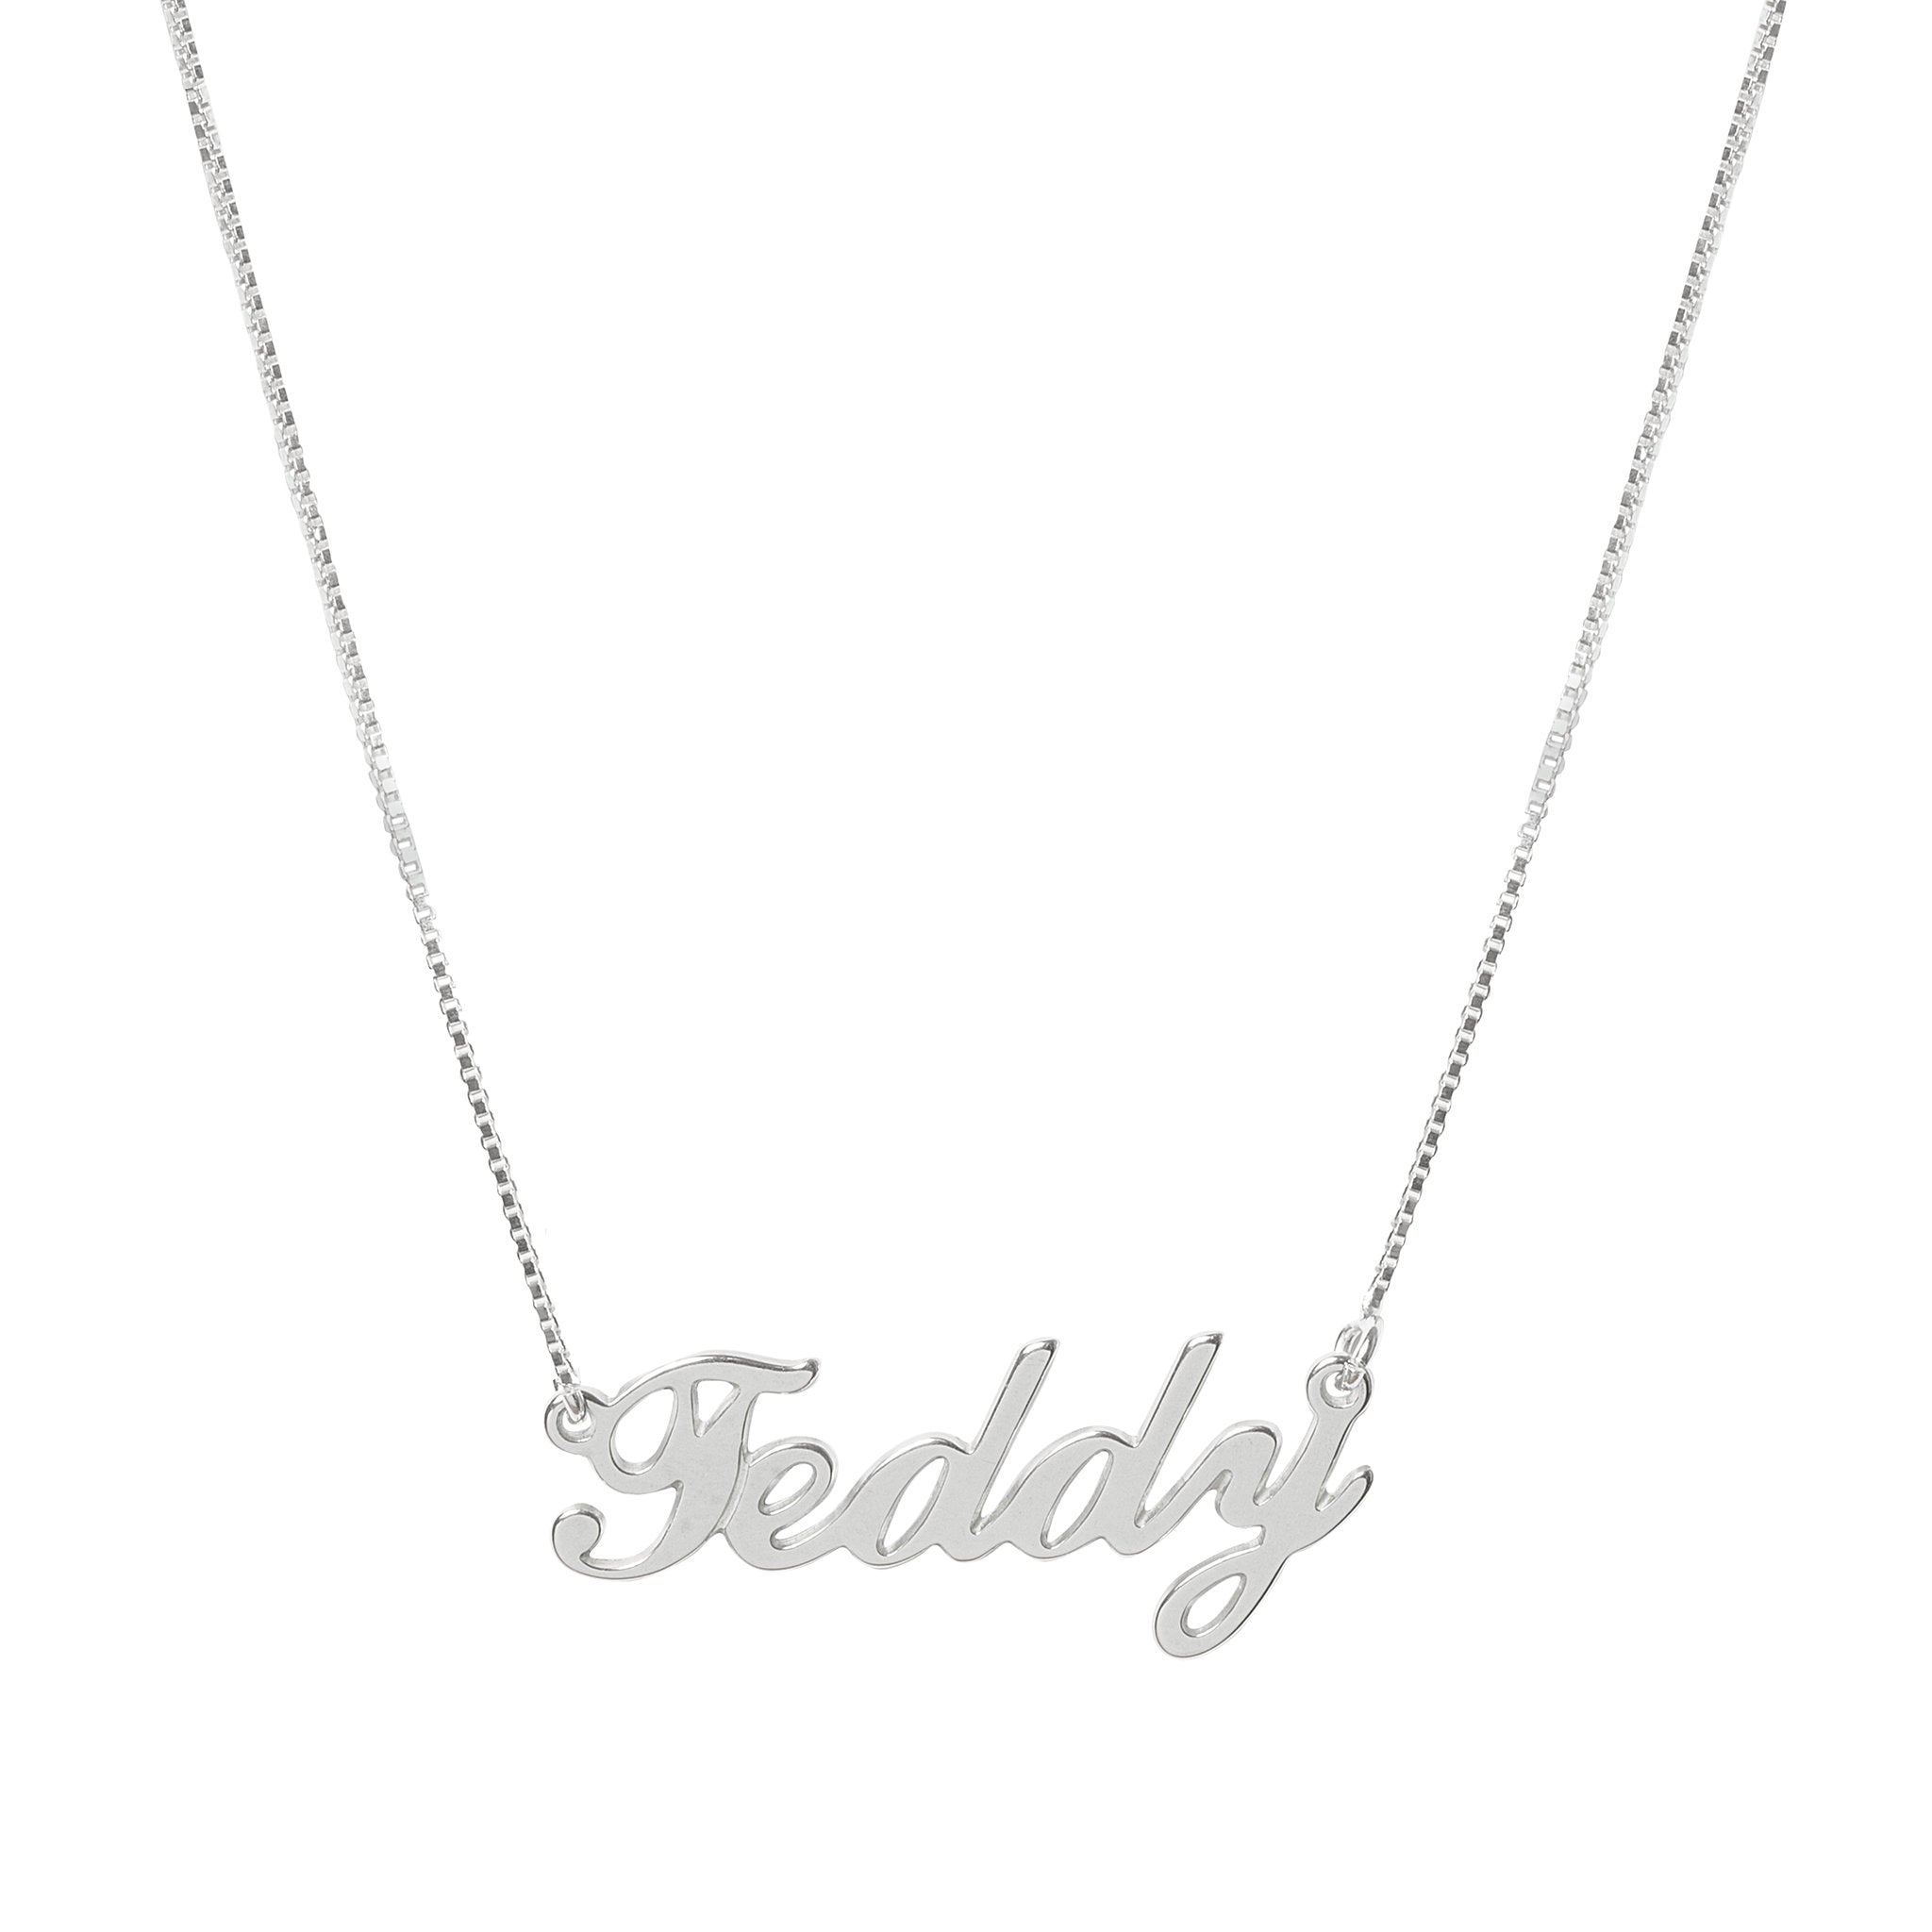 Teddy Name necklace